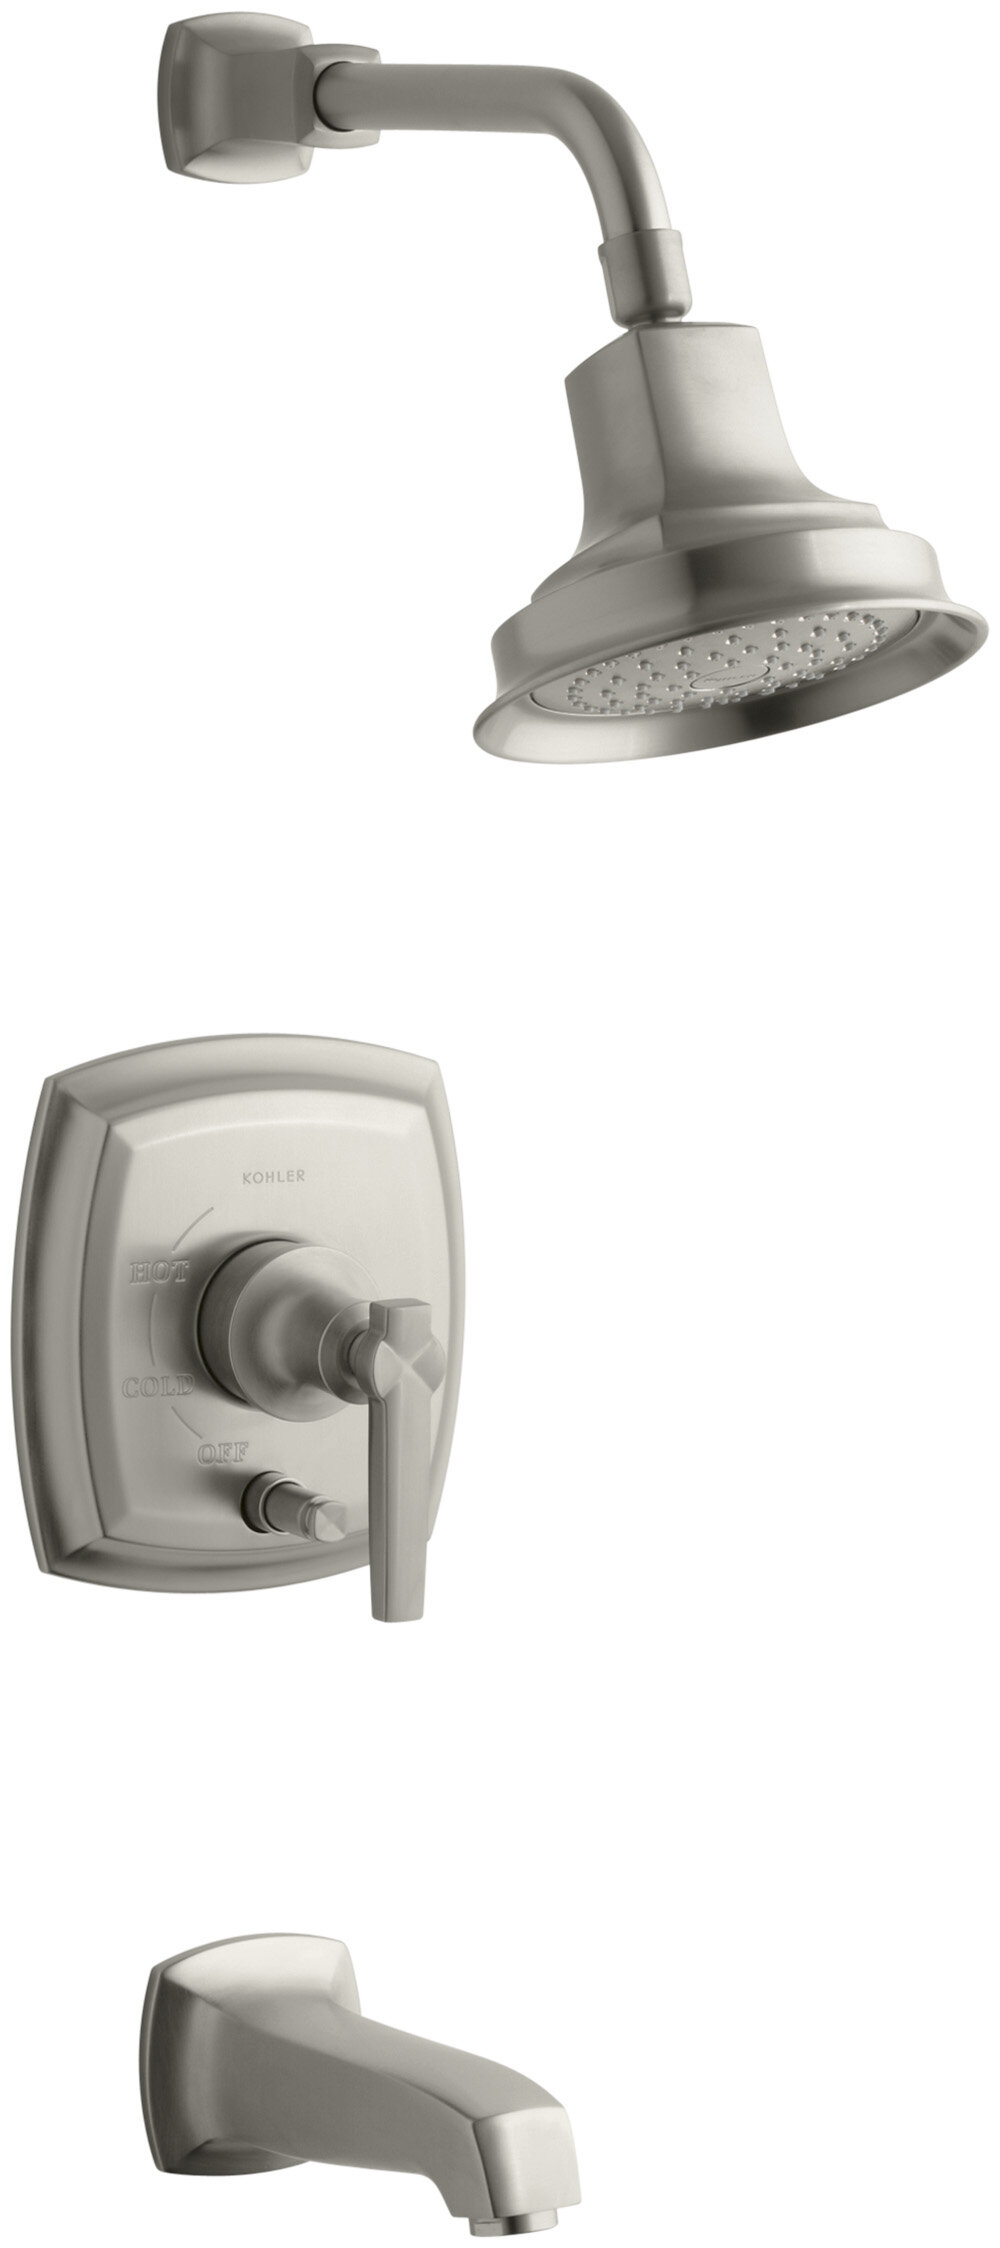 K T16233 4 Cp Bn Kohler Margaux Rite Temp Pressure Balancing Bath And Shower Faucet Trim With Push On Diverter Lever Handle Valve Not Included